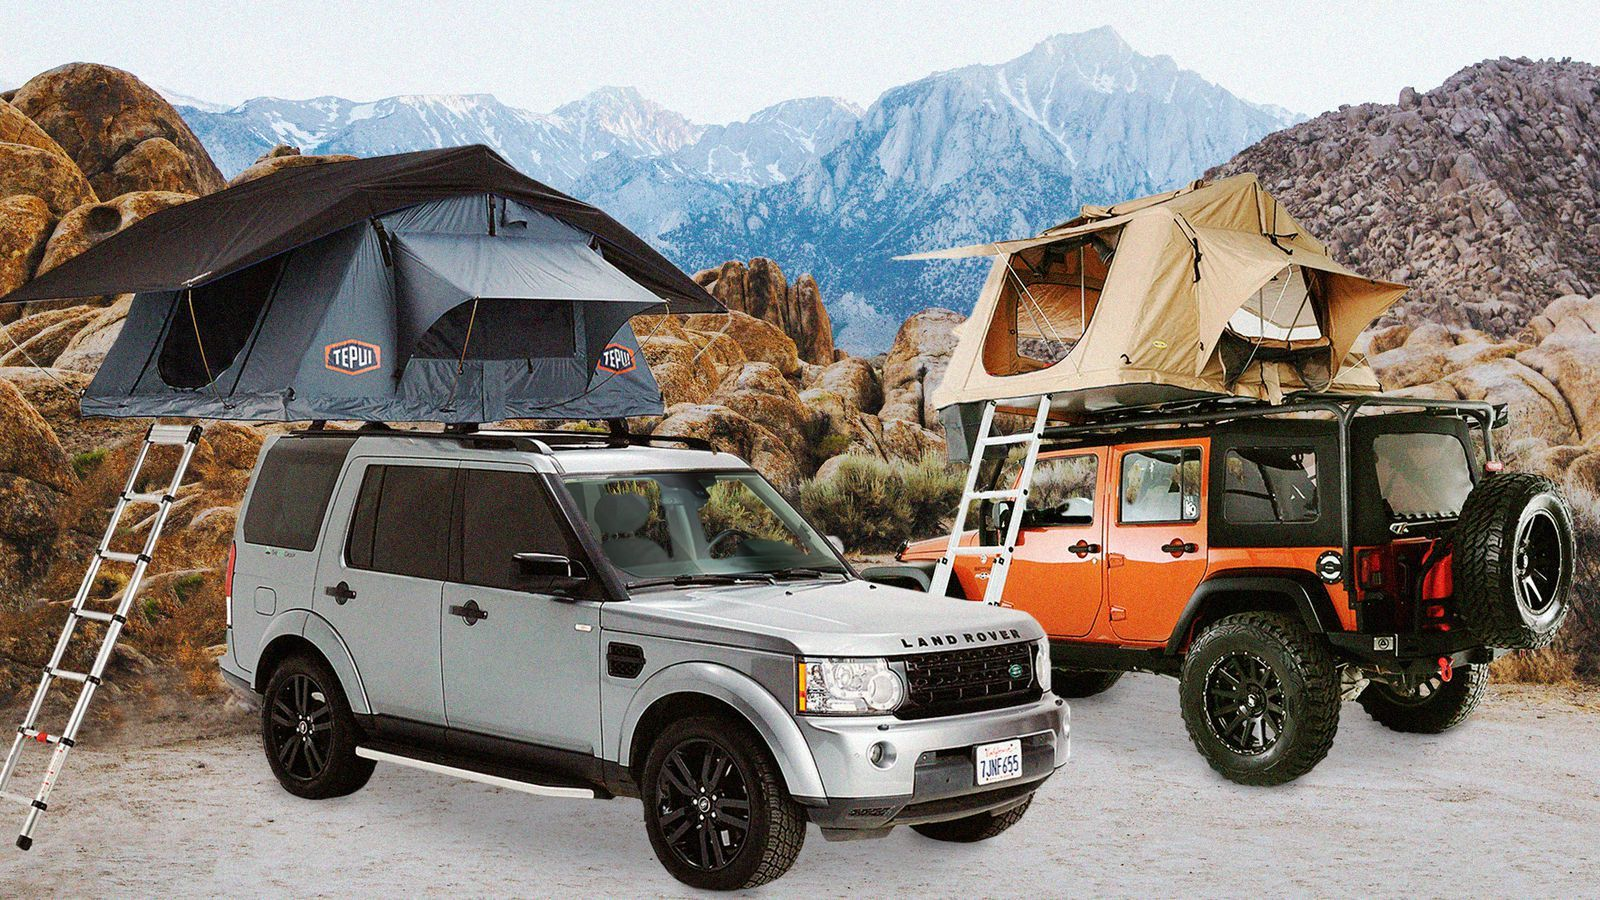 The 7 Best Rooftop Tents for Far-Out (and Closer-to-Home) Adventures